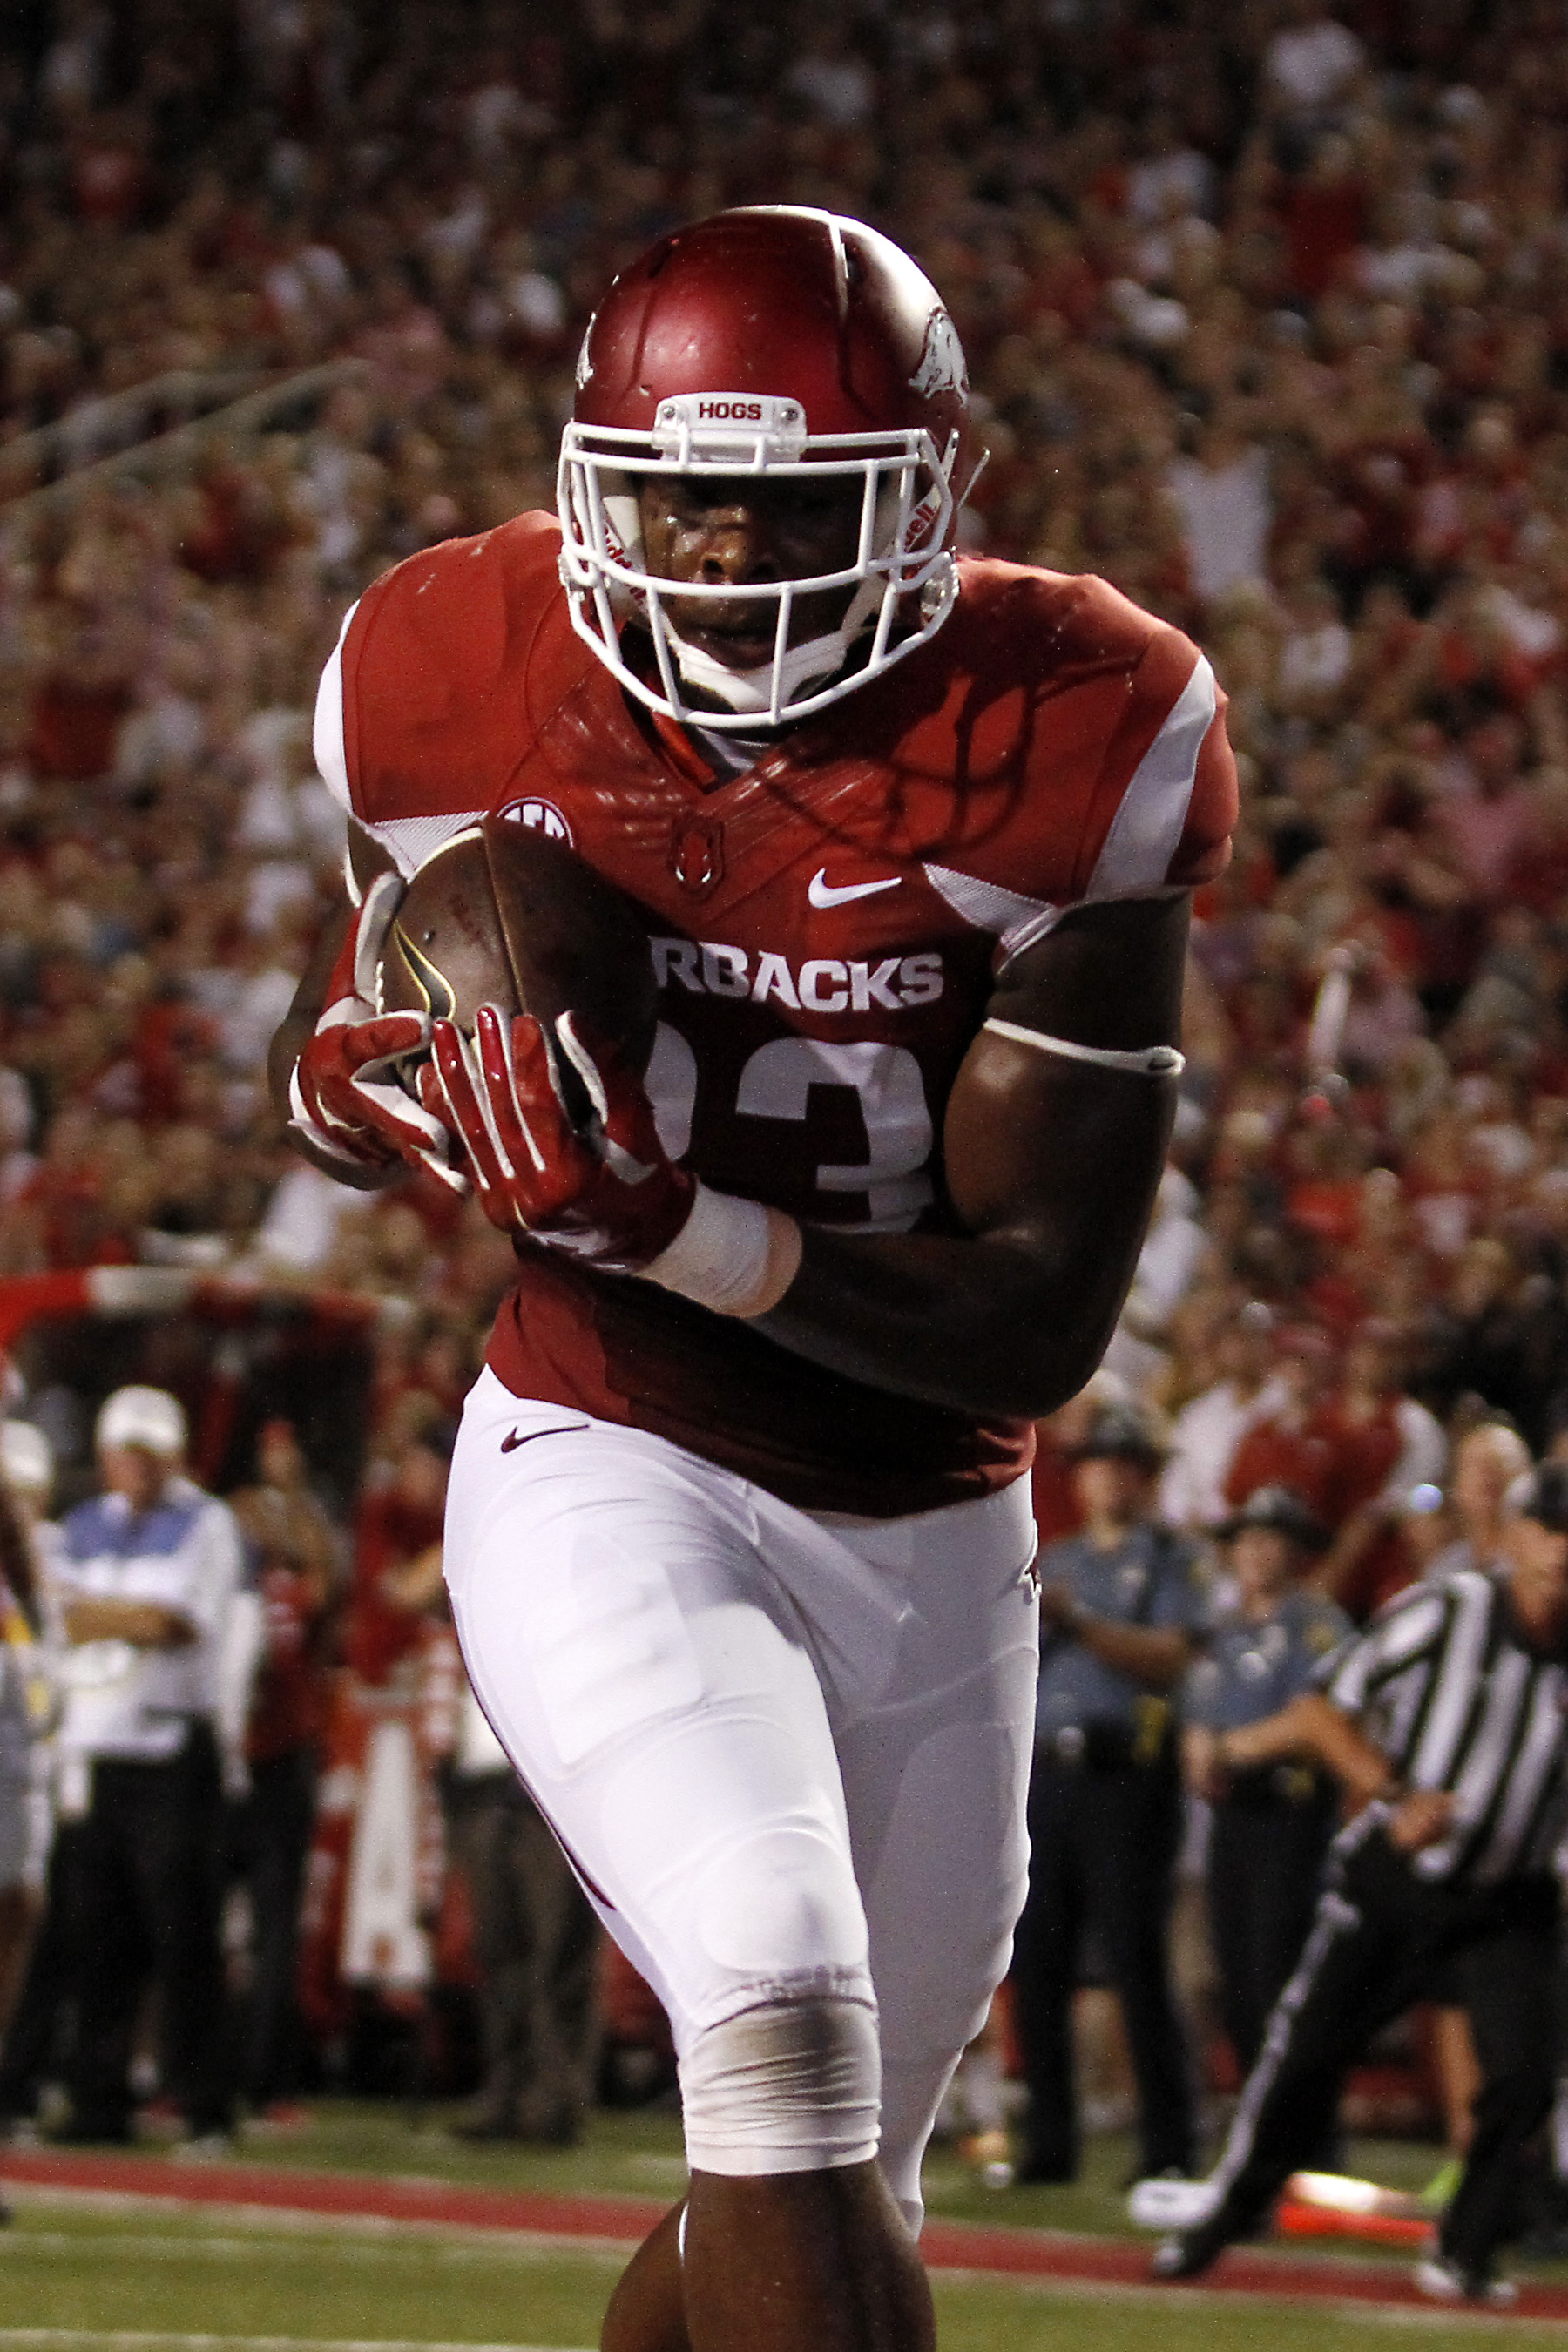 Arkansas' Jeremy Sprinkle (83) catches a pass in the end zone during the second quarter of an NCAA college football game against Texas State Saturday, Sept. 17, 2016 in Fayetteville, Ark. (AP Photo/Samantha Baker)